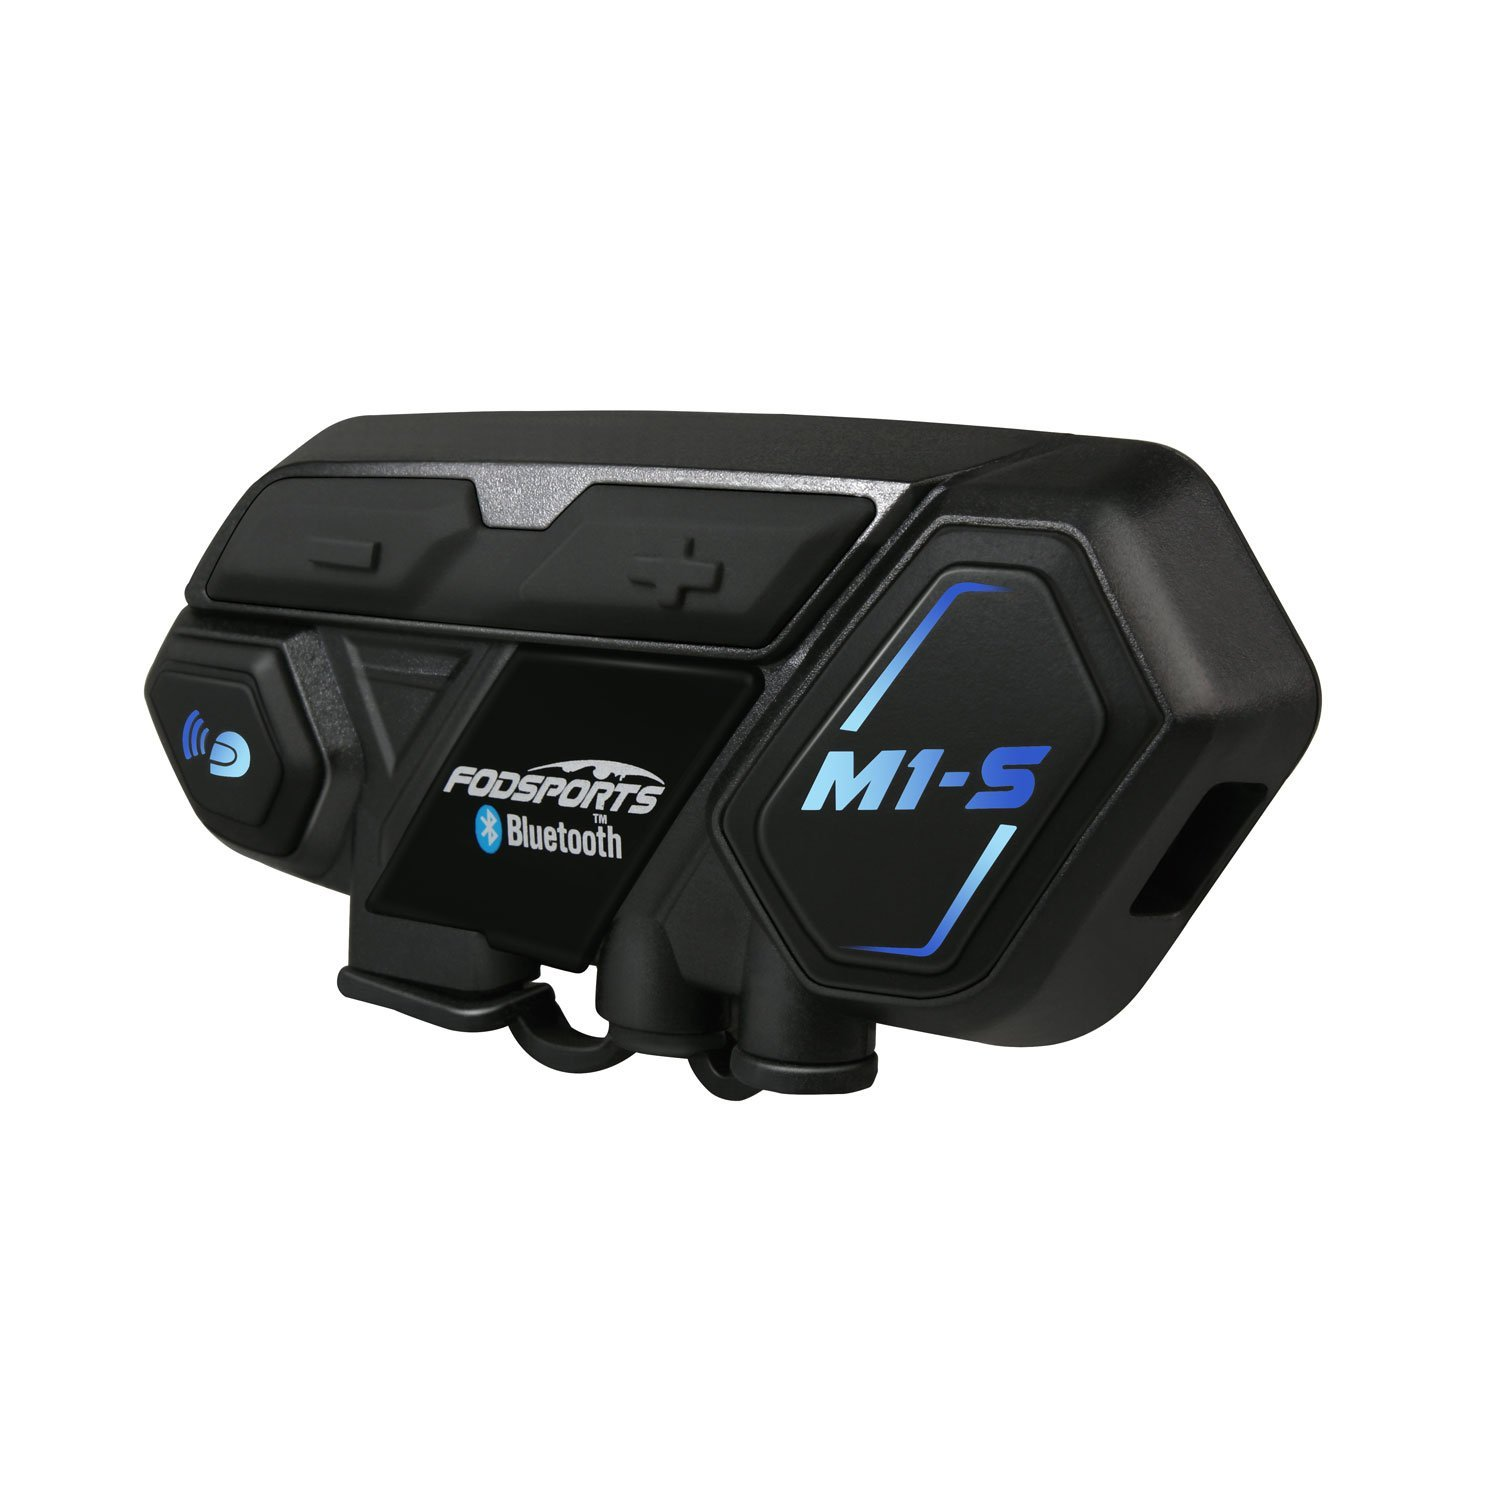 M1S Motorcycles Bluetooth Intercom Headset Communication System Accessories Kit (Hard Microphone and Soft Microphone) Fodsports